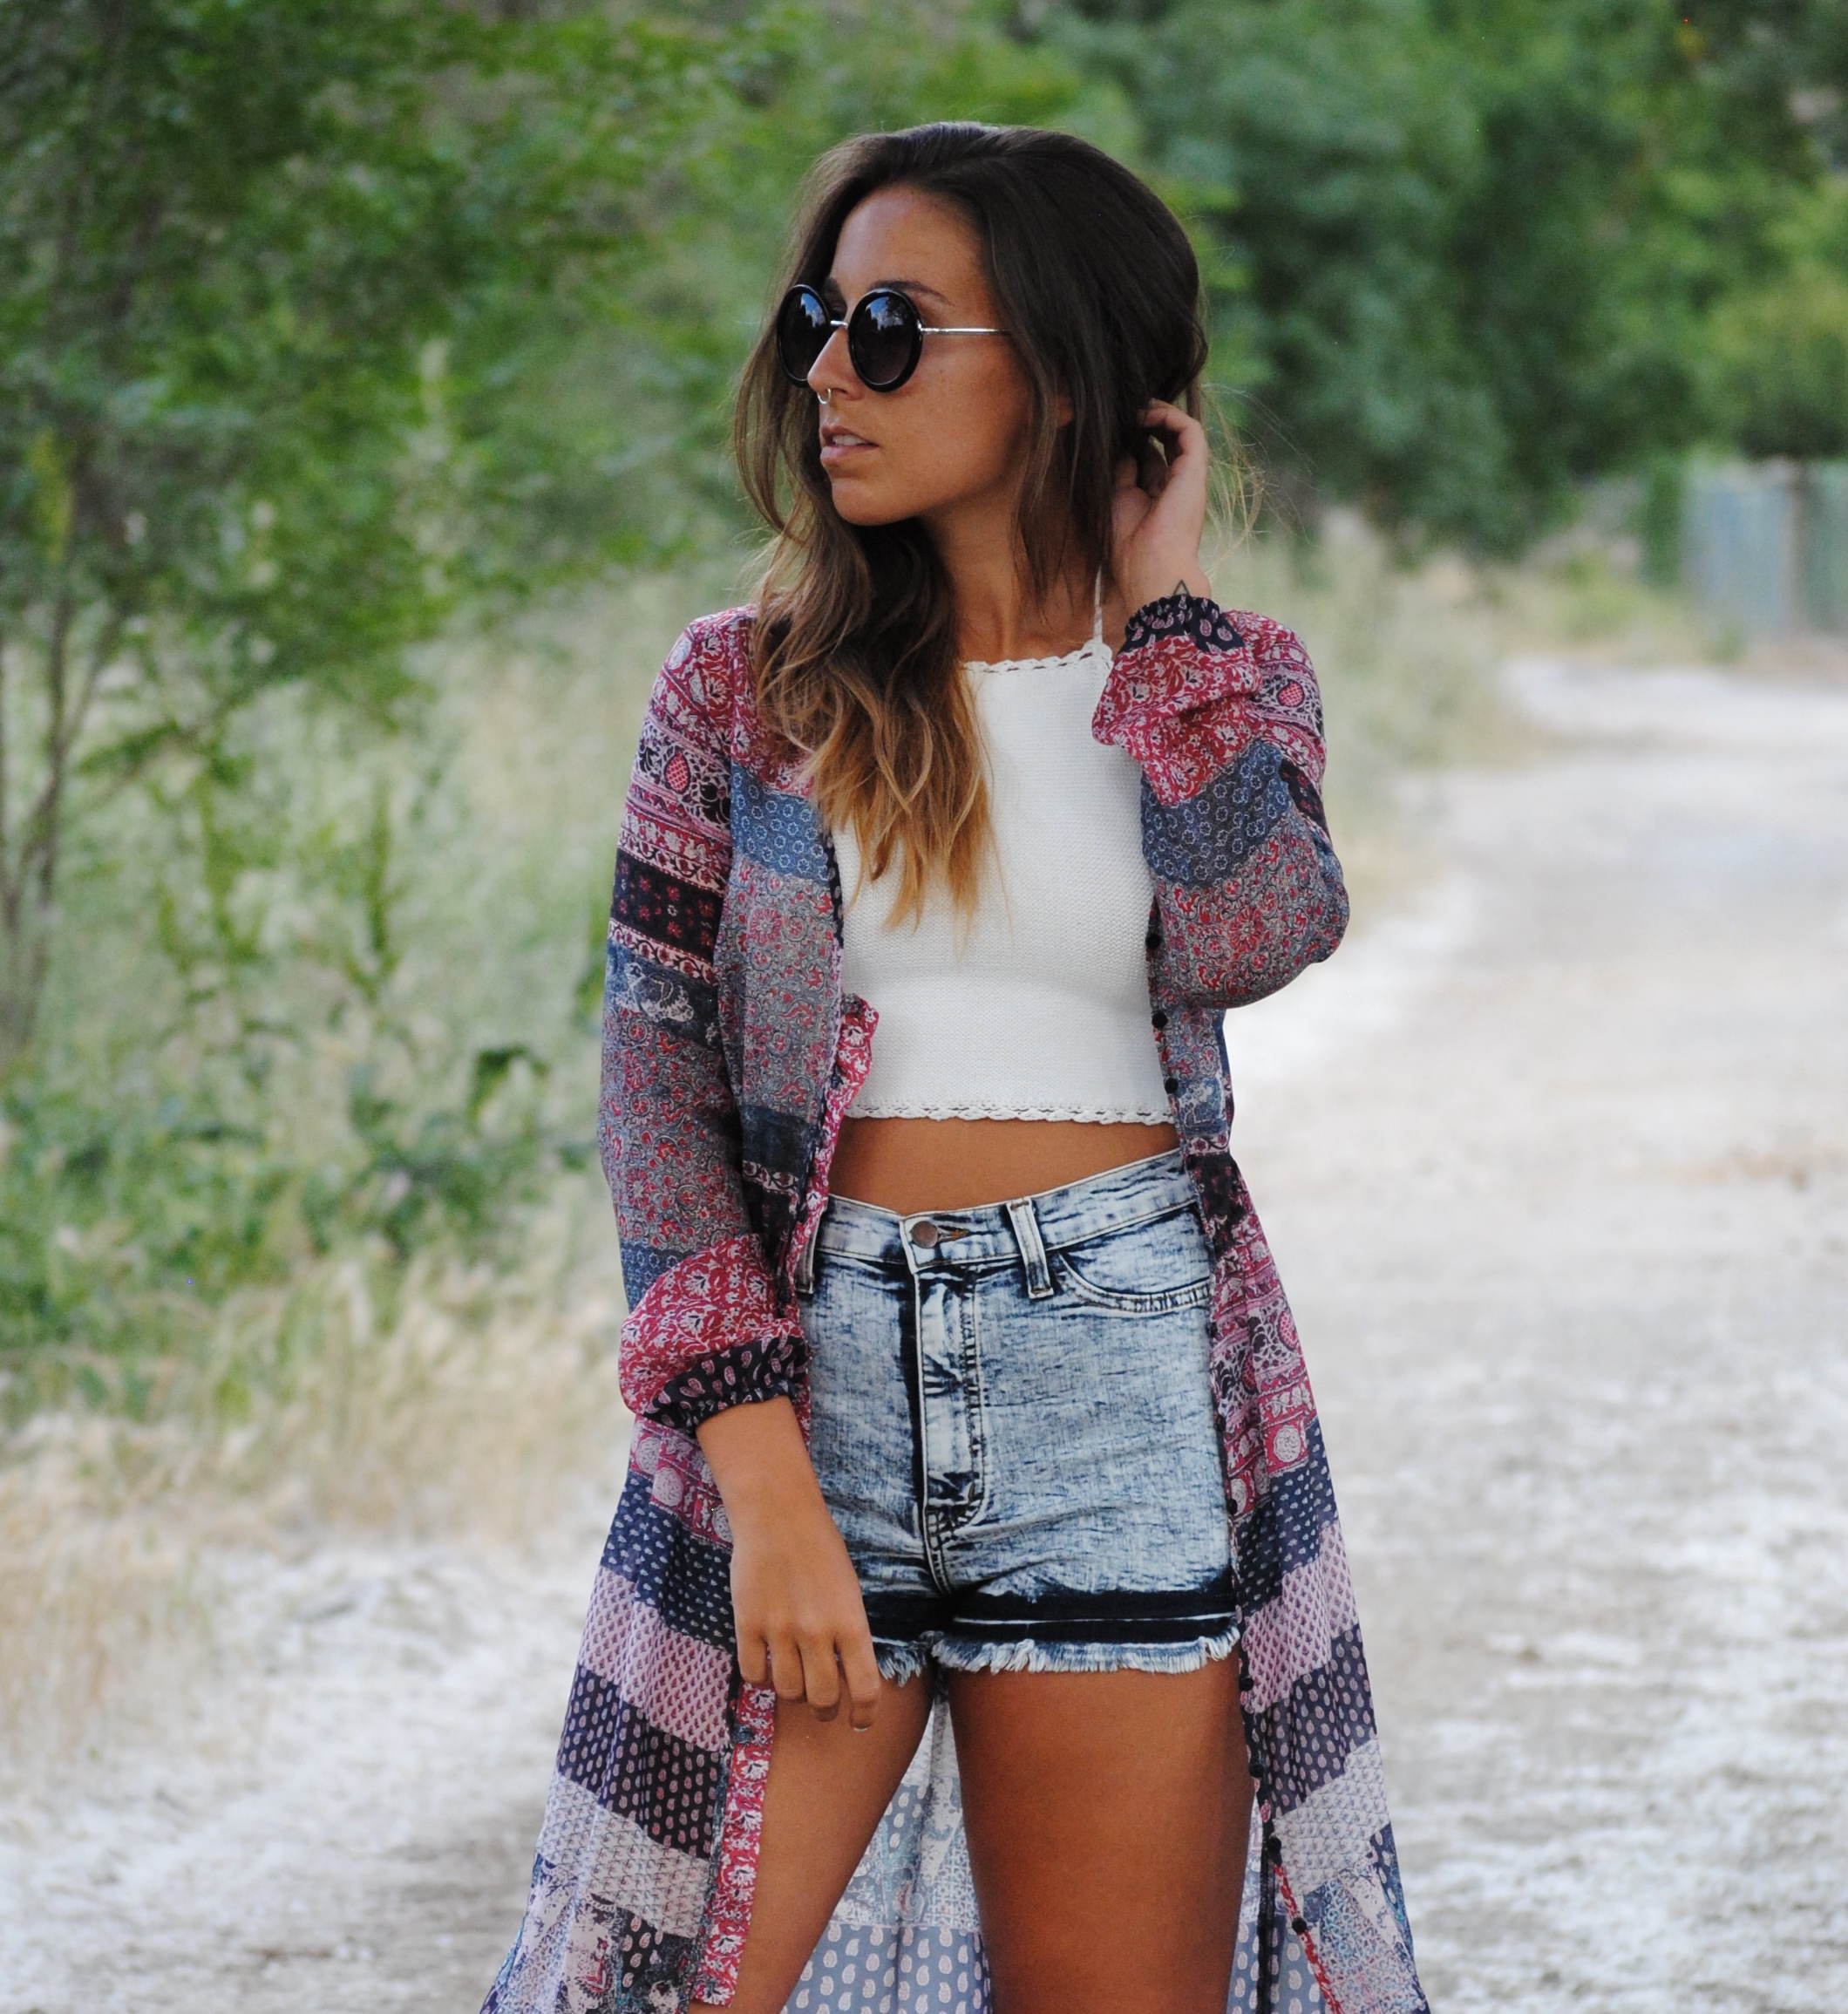 boho chic summer outfit